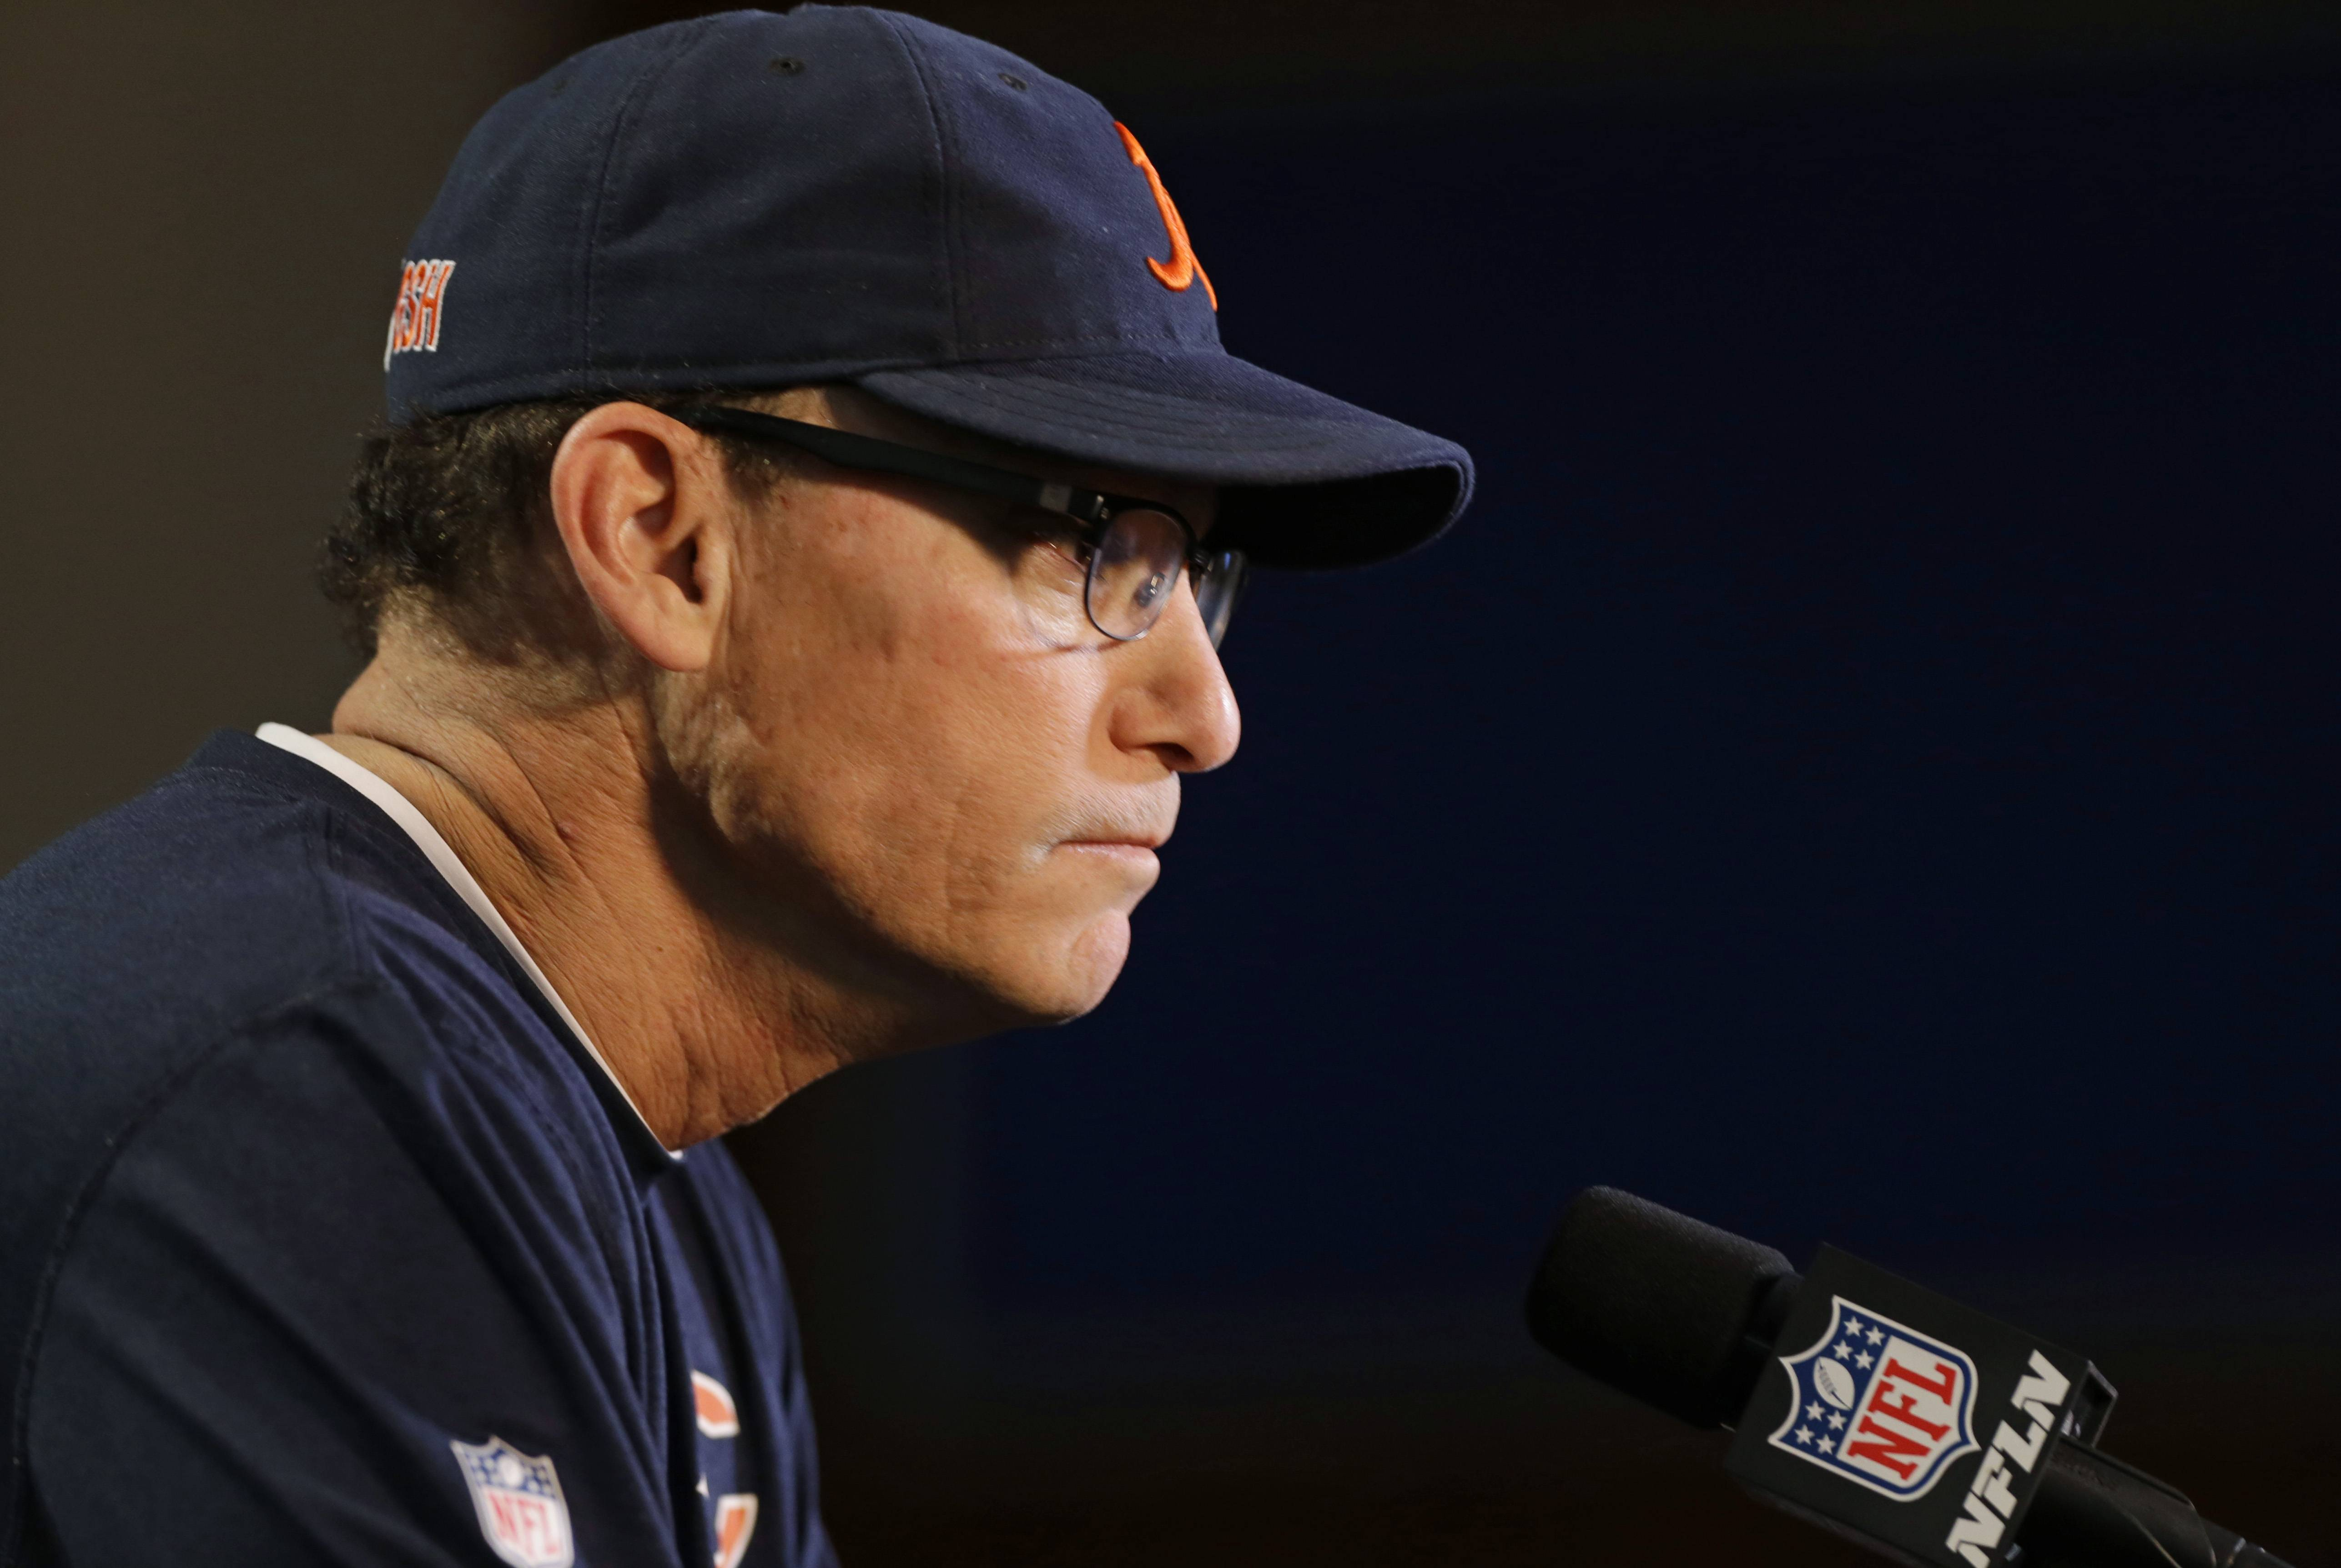 At the NFL Scouting Combine on Thursday, Chicago Bears head coach Marc Trestman said he's excited to see how well Shea McClellin performs as he switches from defensive end to lineback next season.